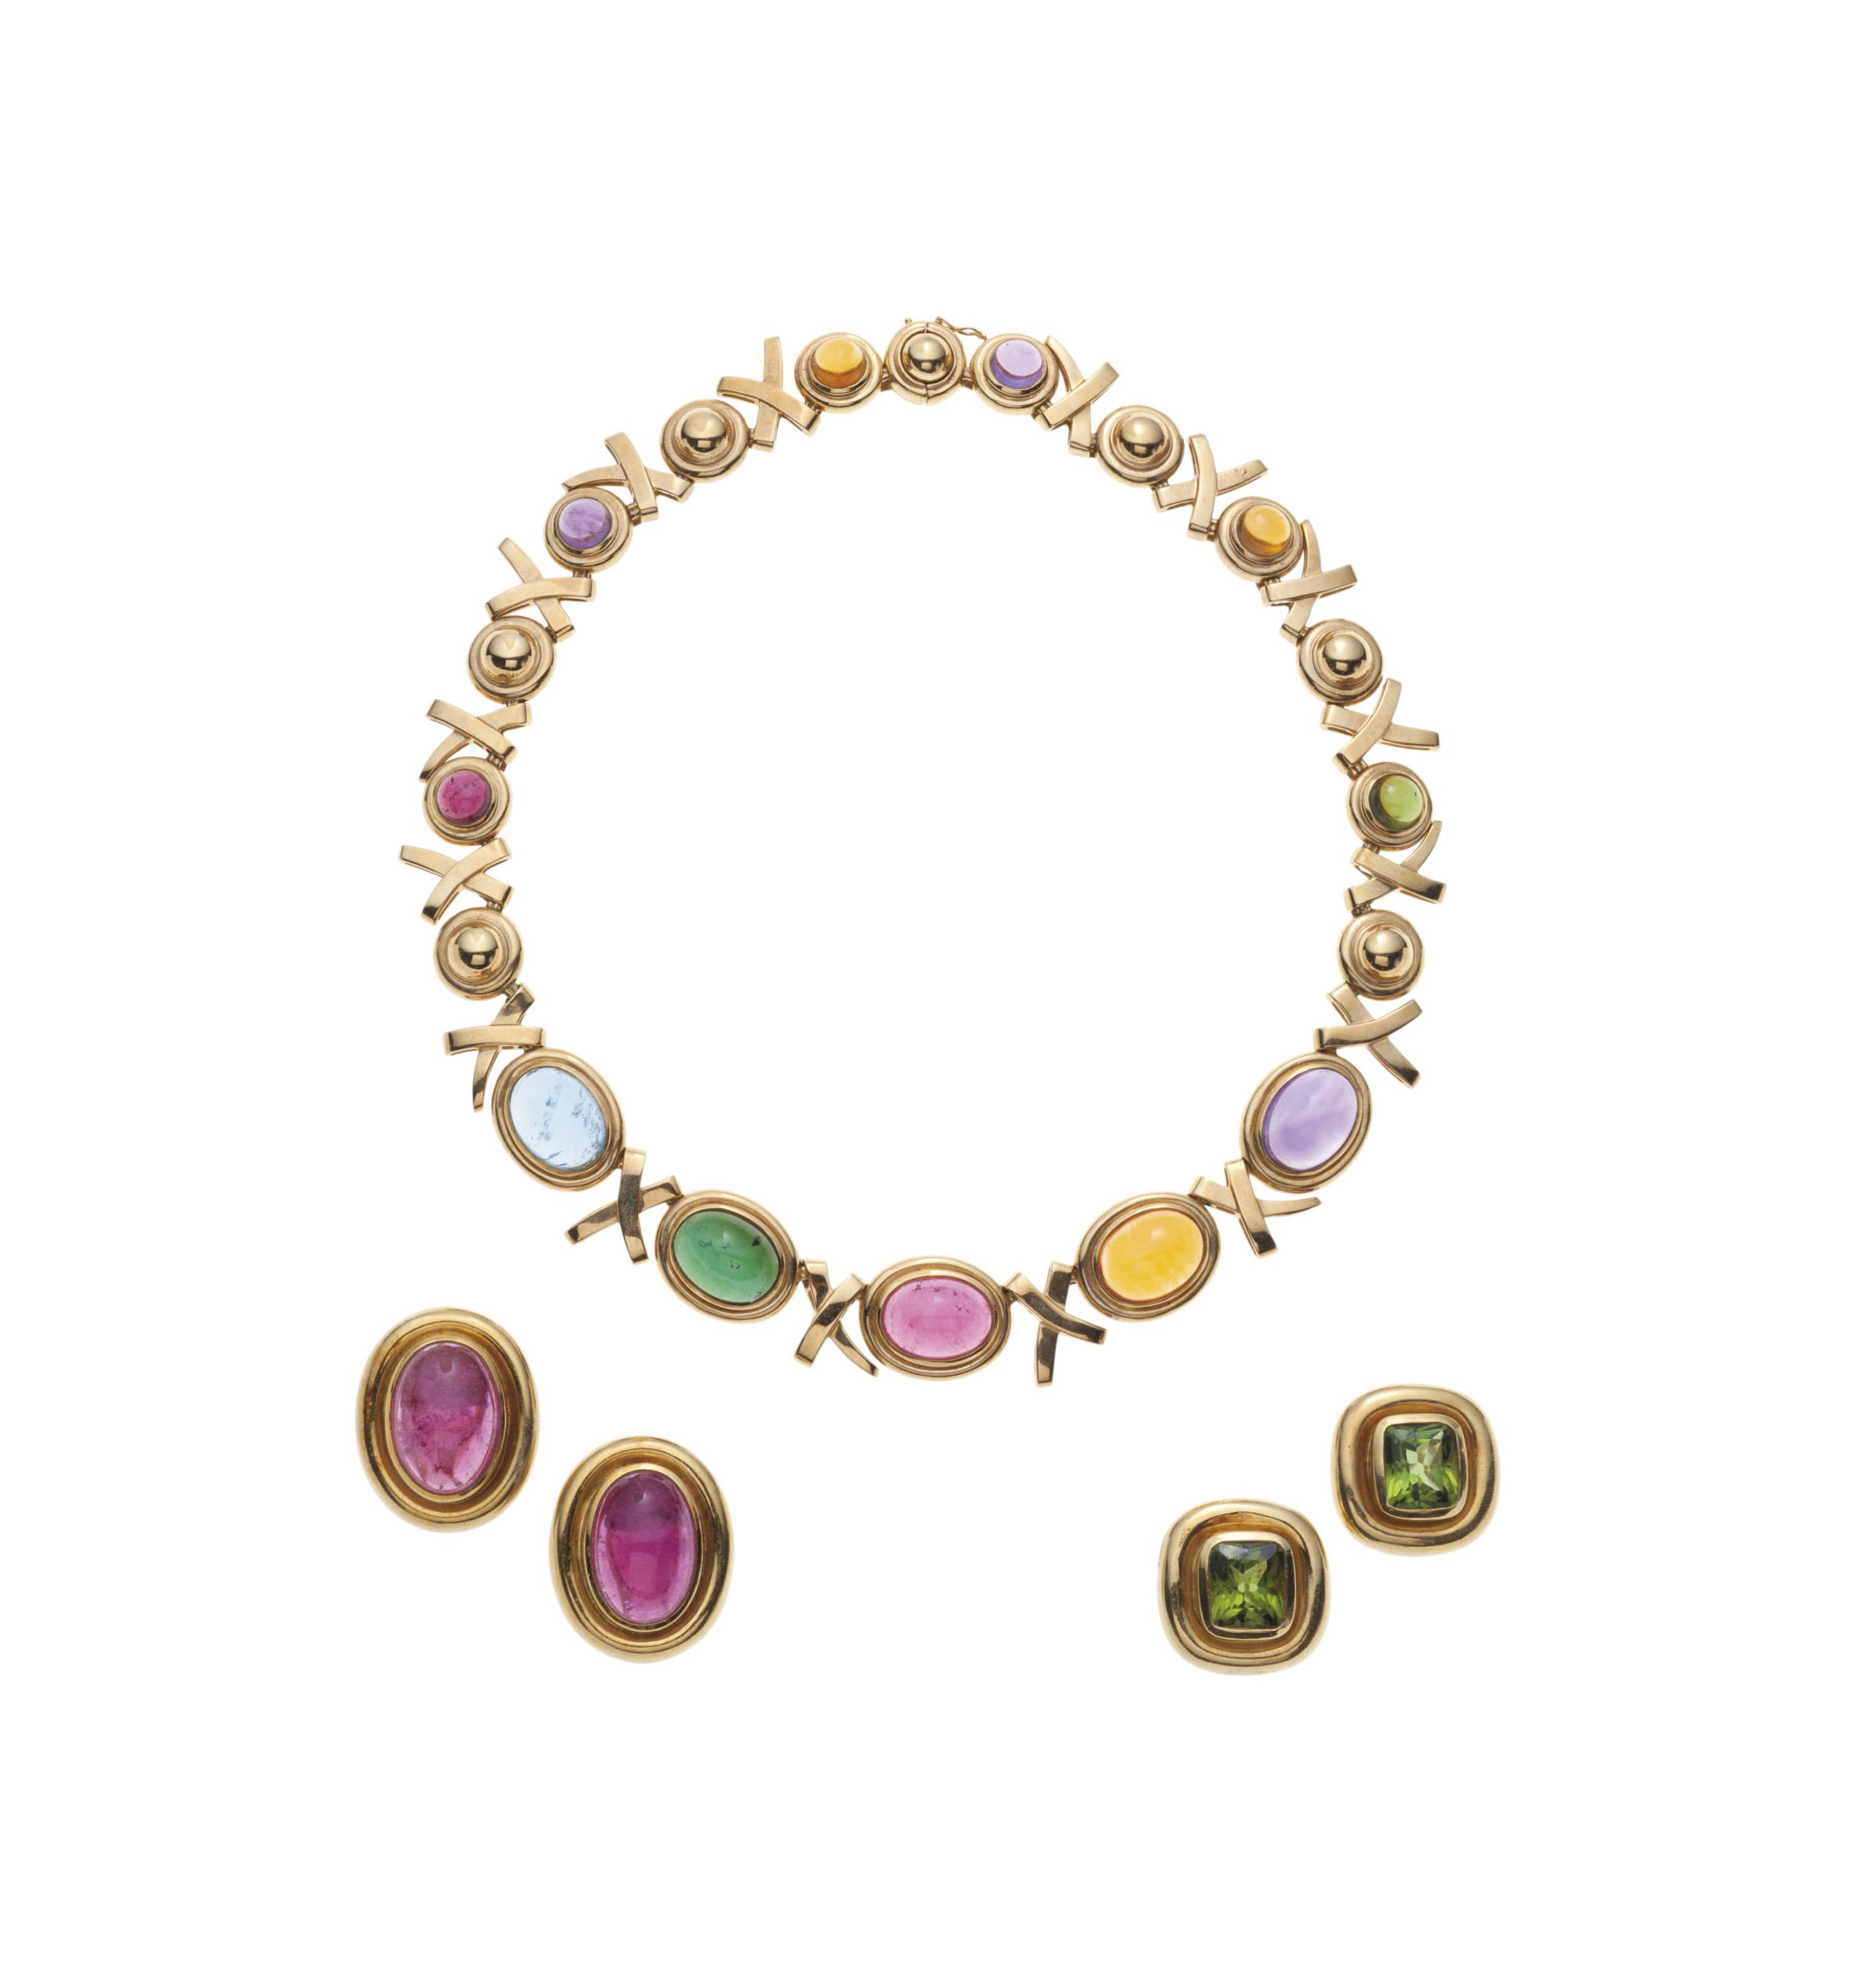 A GROUP OF MULTI-GEM JEWELRY, BY PALOMA PICASSO, TIFFANY & CO.